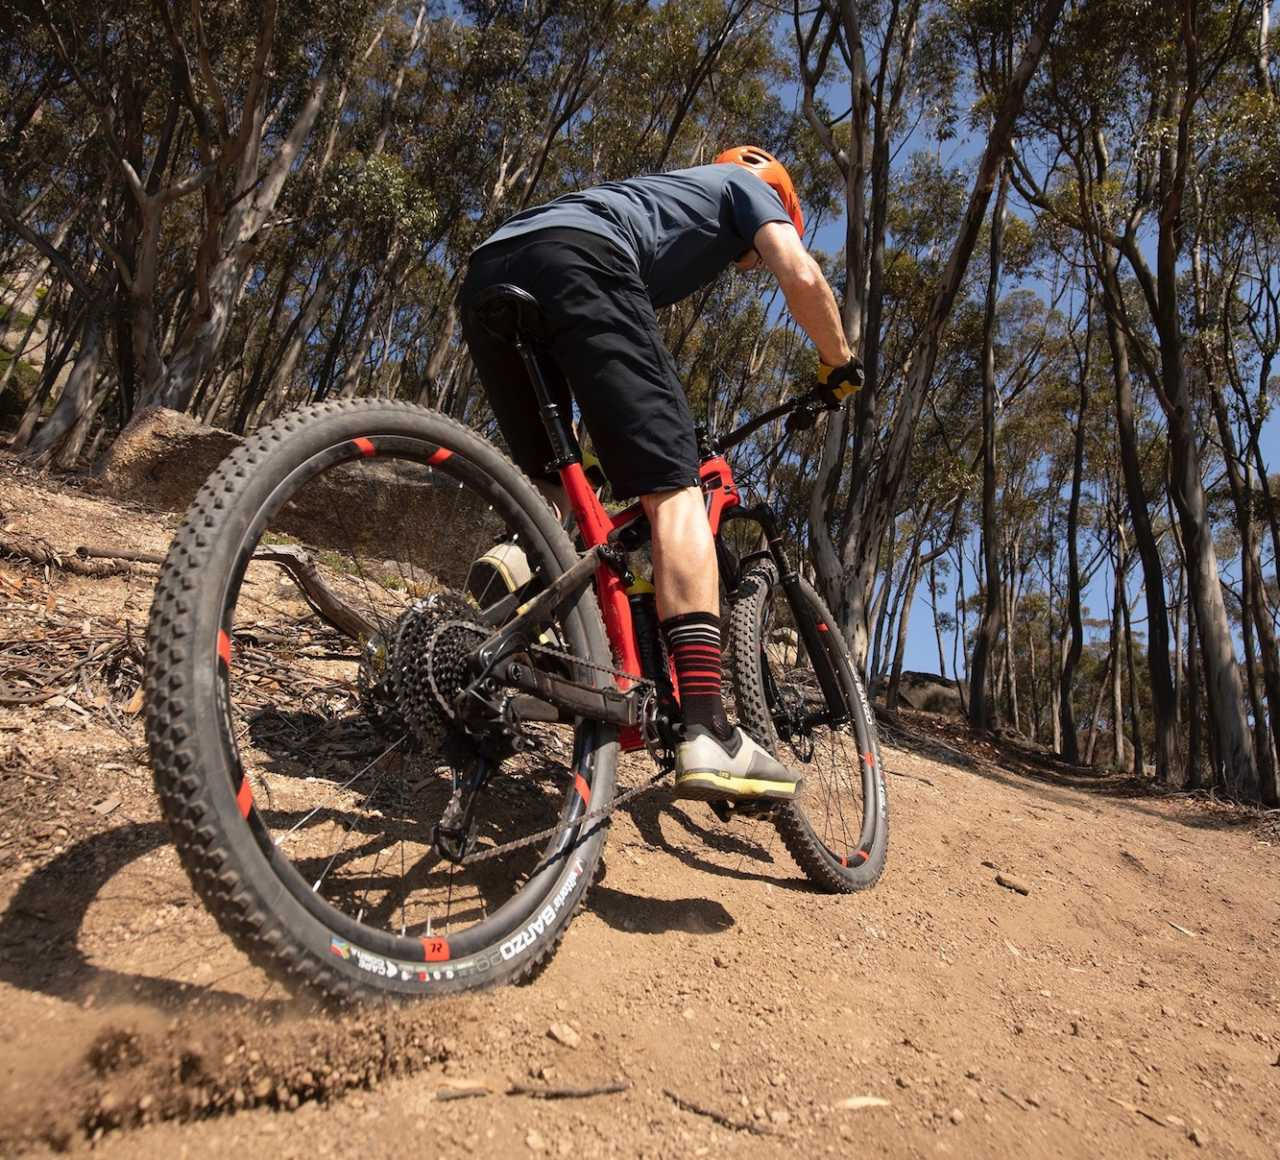 Myles Kelsey mountain biking on the Titan Cypher 120mm cross country mountain bike in Cape Town South africa.